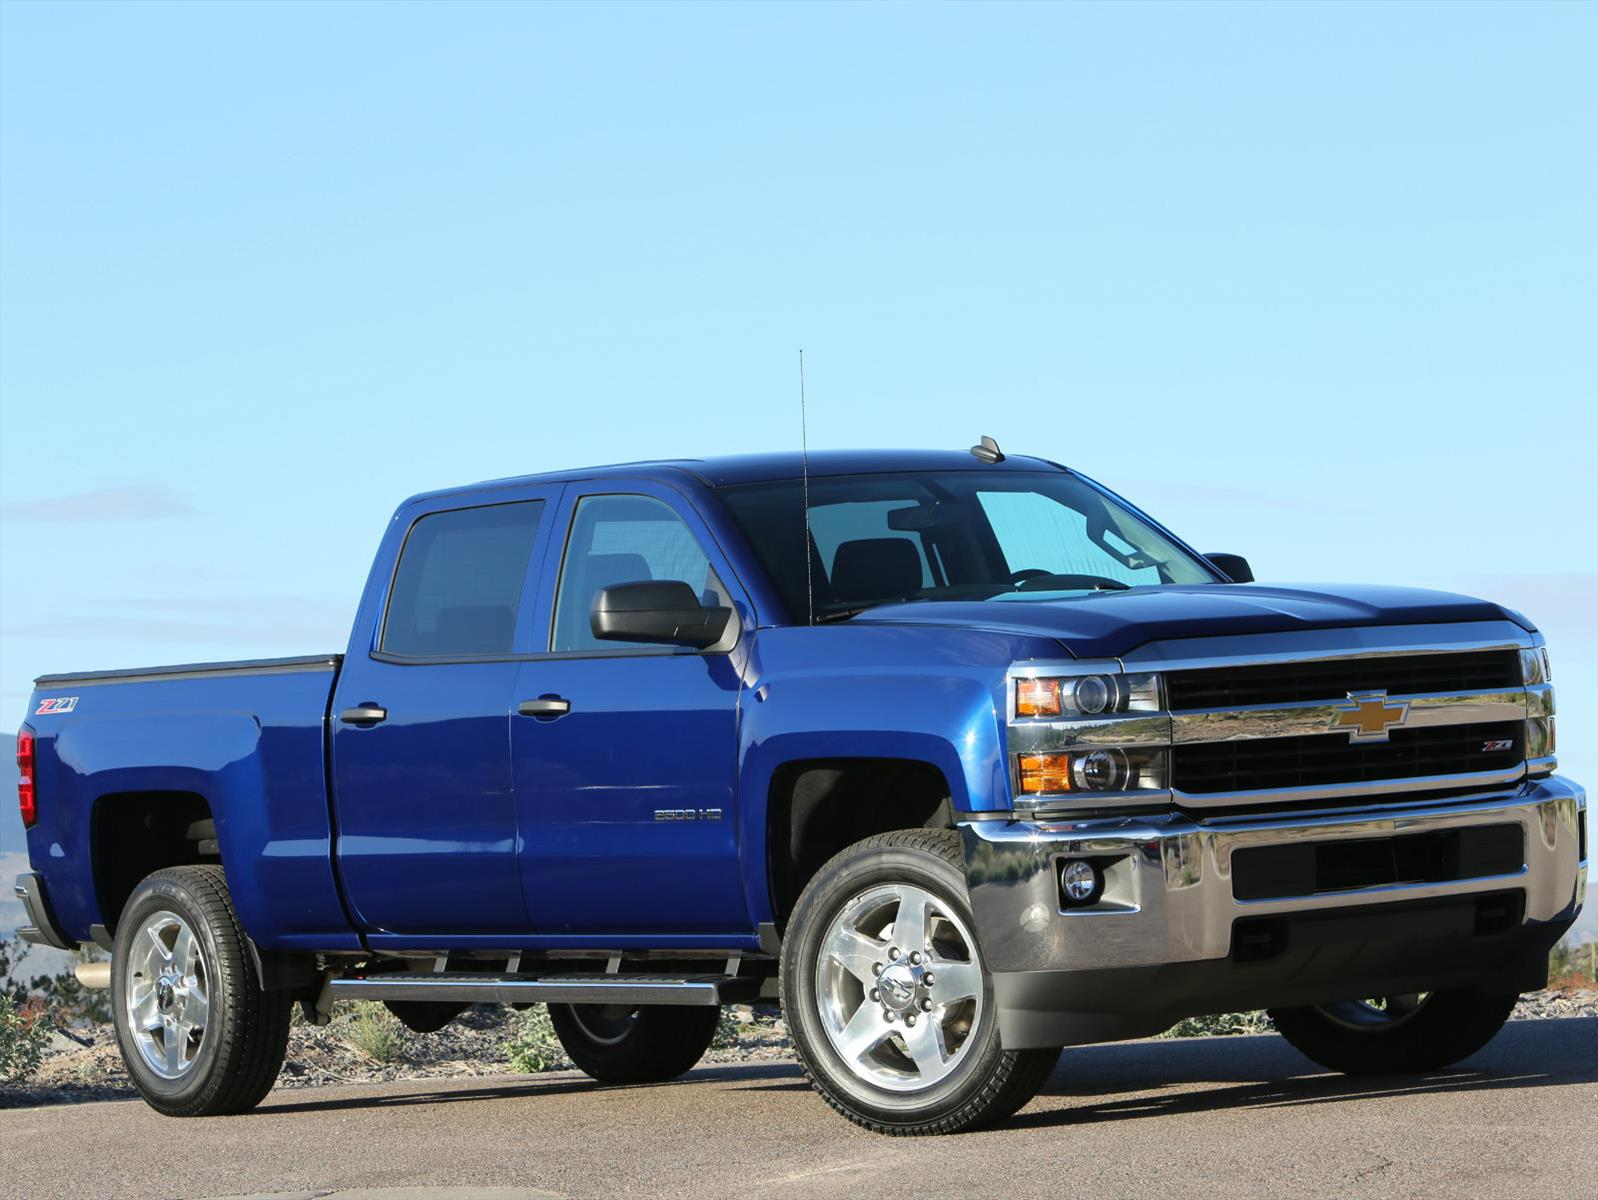 chevrolet silverado 2500hd carhartt concept 2017 debuta. Black Bedroom Furniture Sets. Home Design Ideas